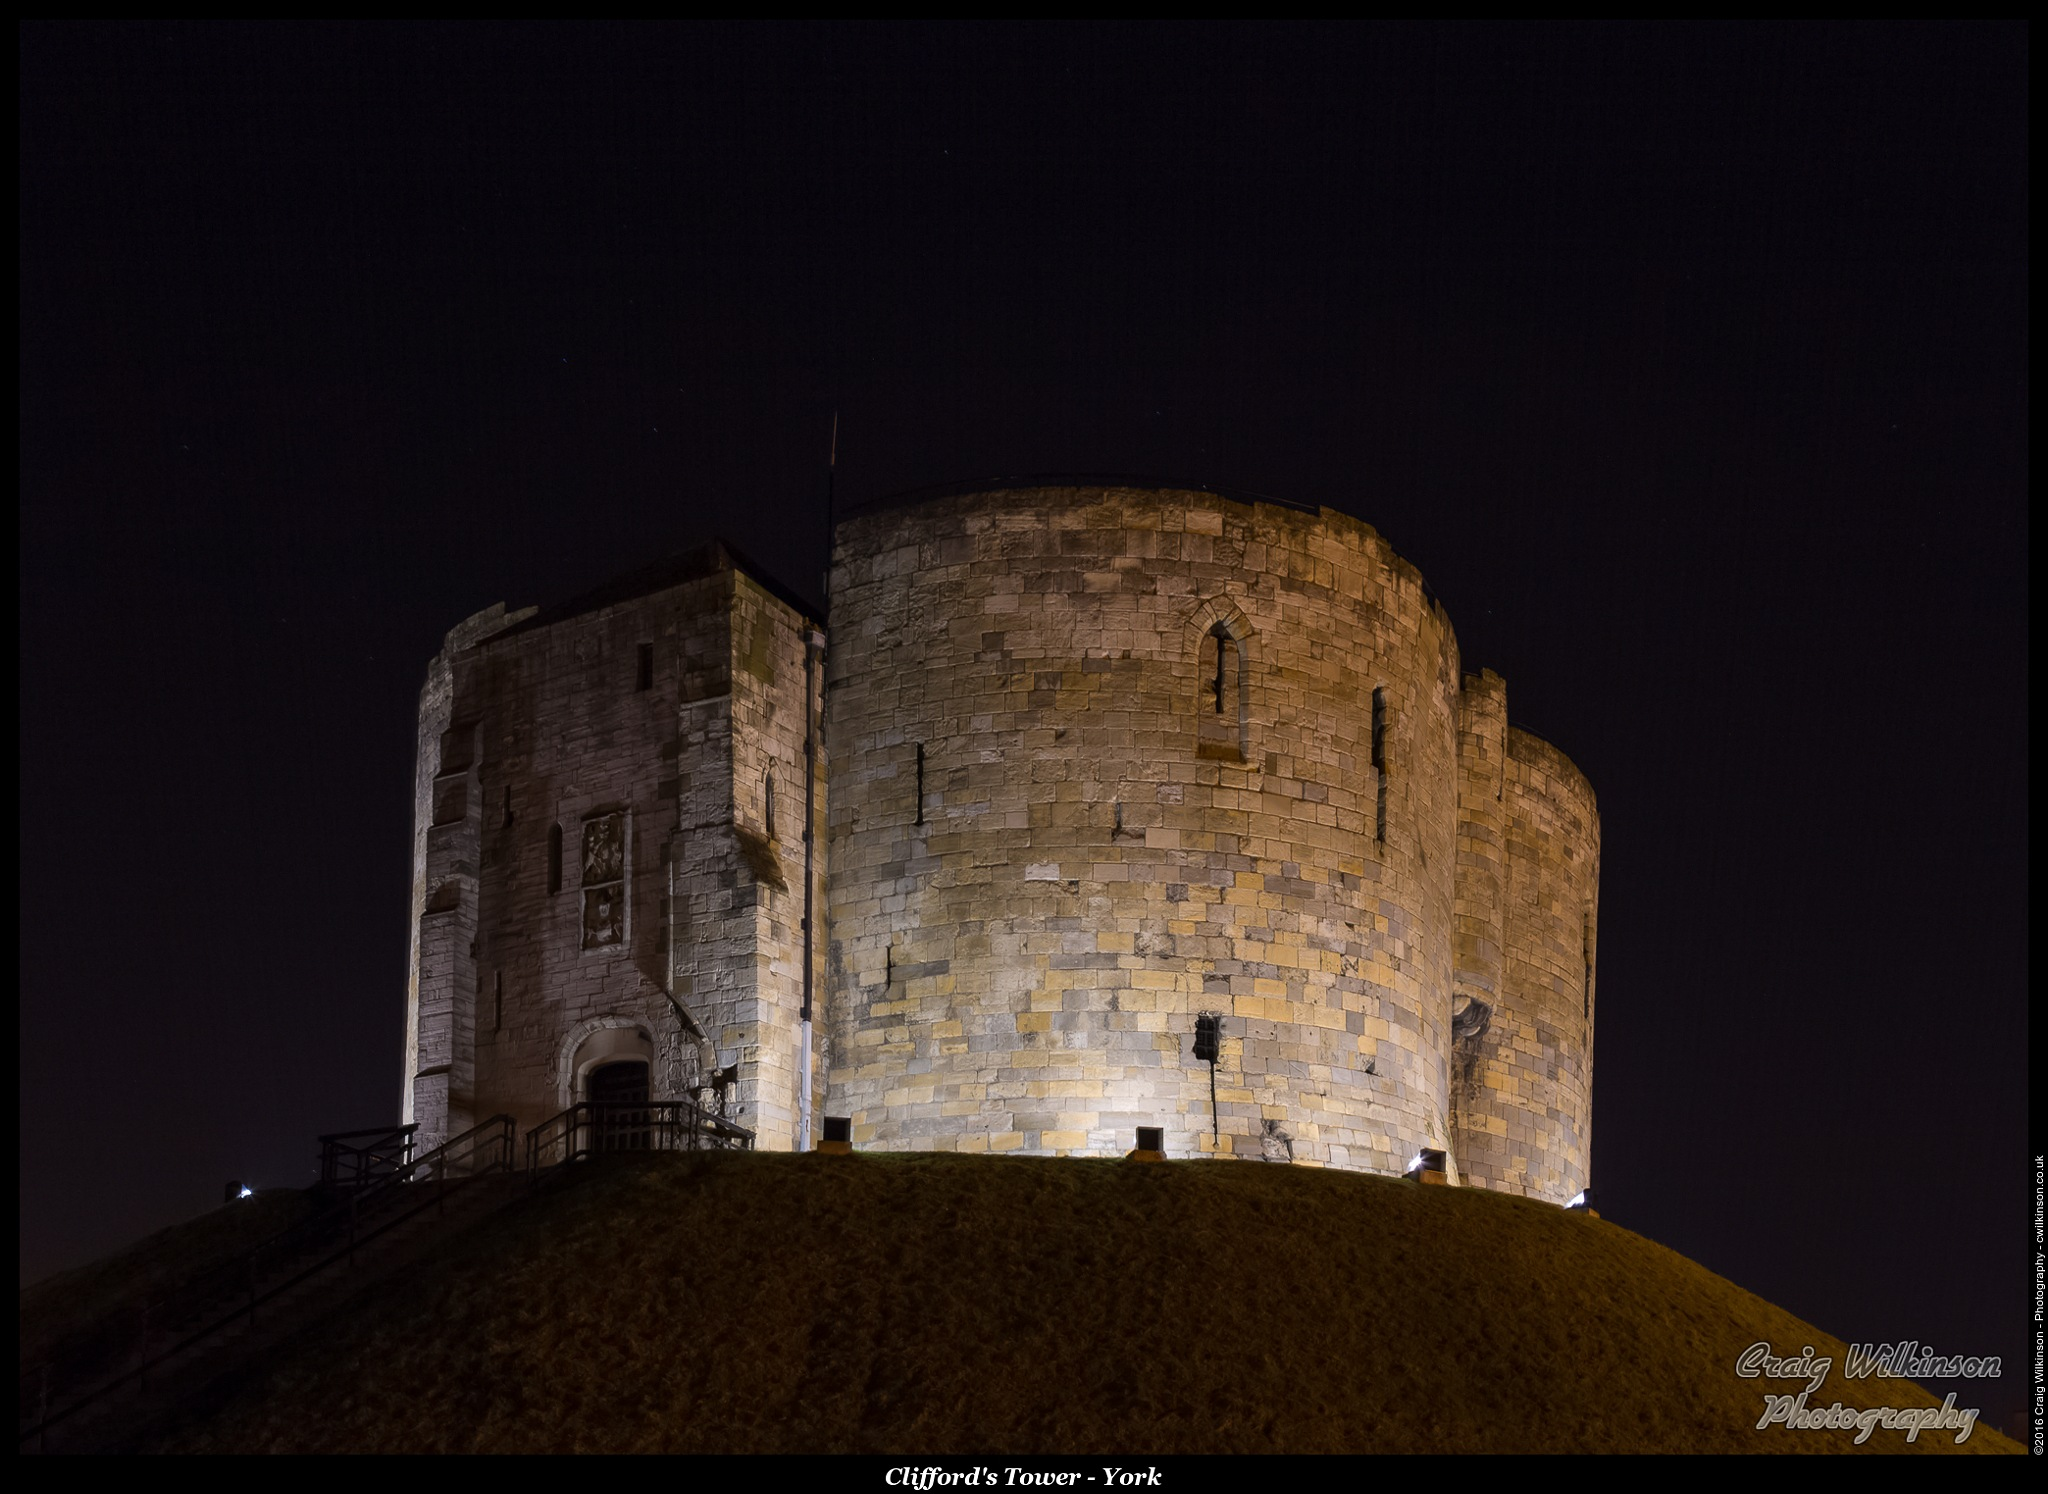 Cliffords Tower - York by Craig Wilkinson